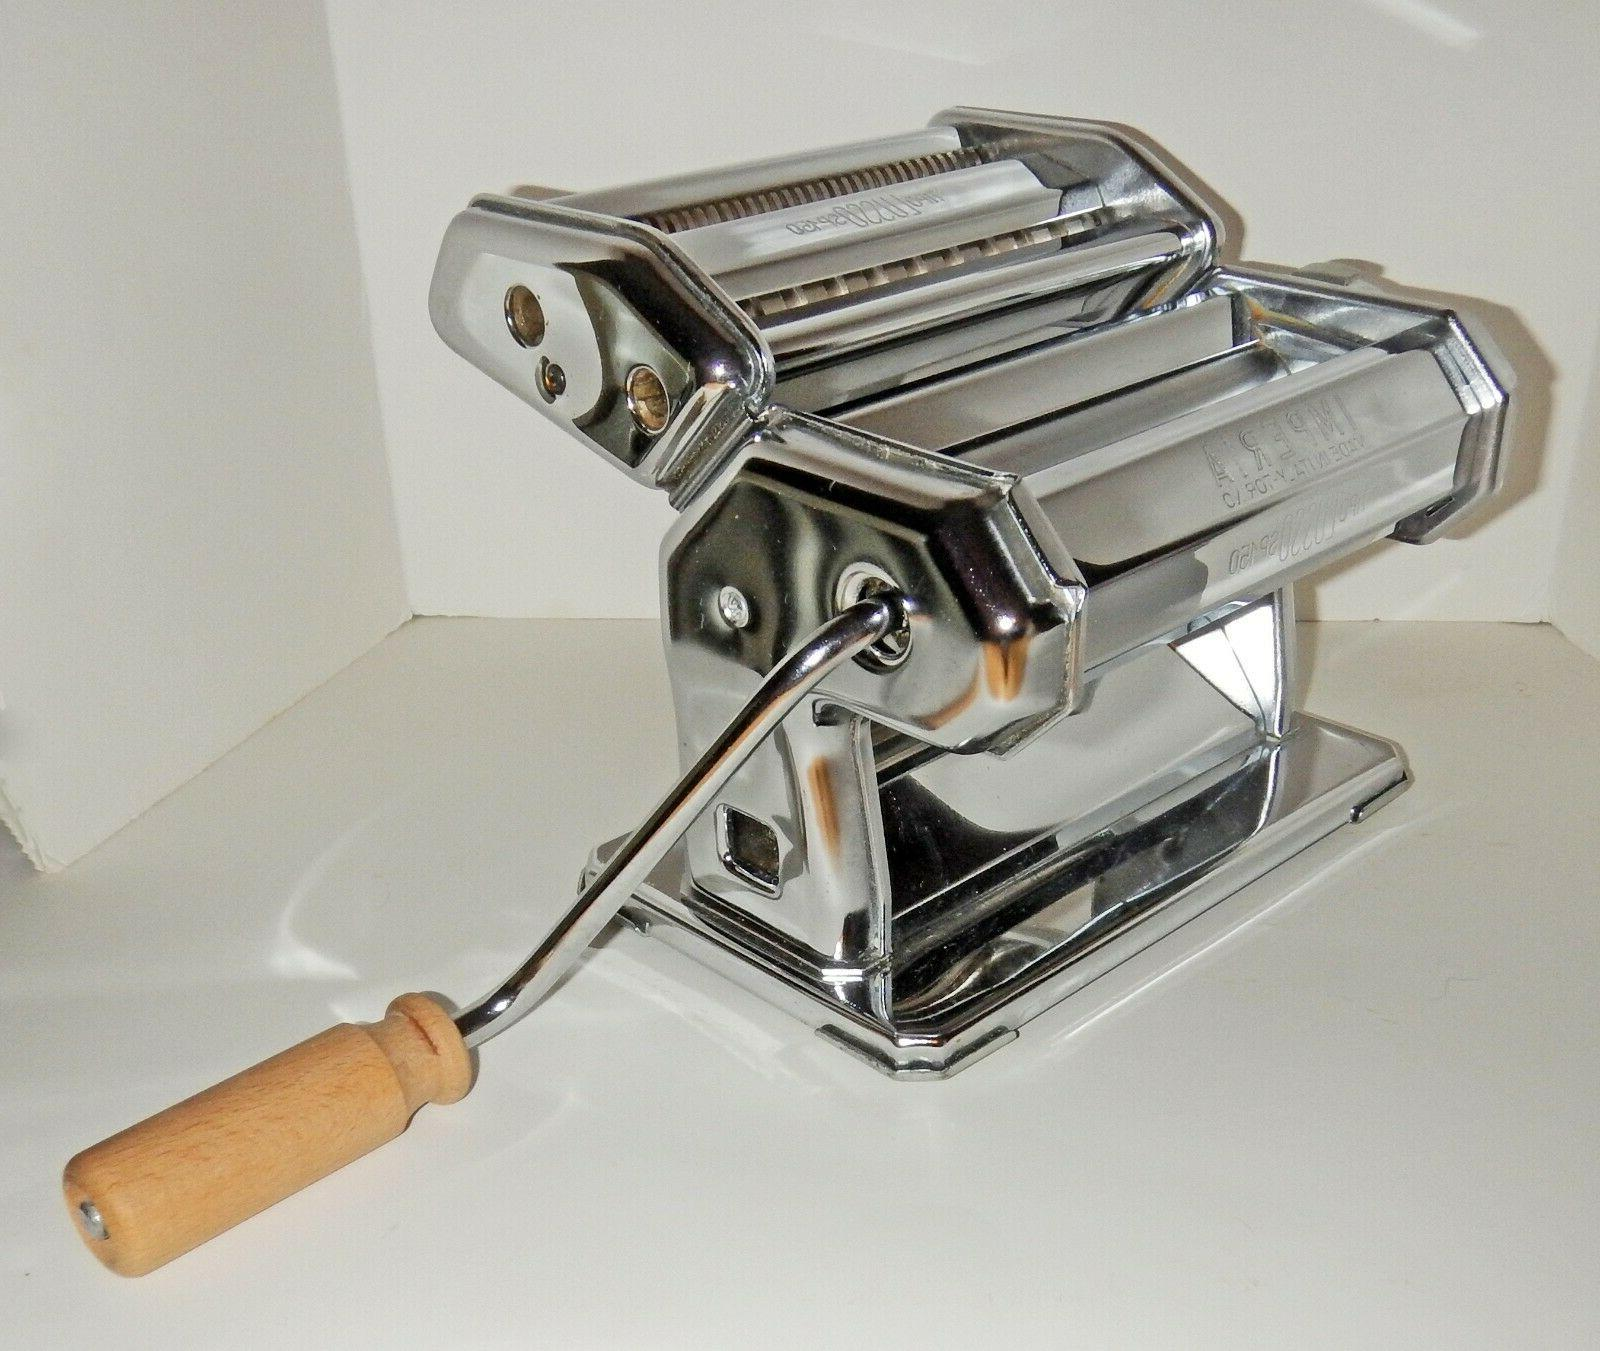 Vtg IMPERIA TIPO LUSSO SP-150 Stainless Steel PASTA MAKER No